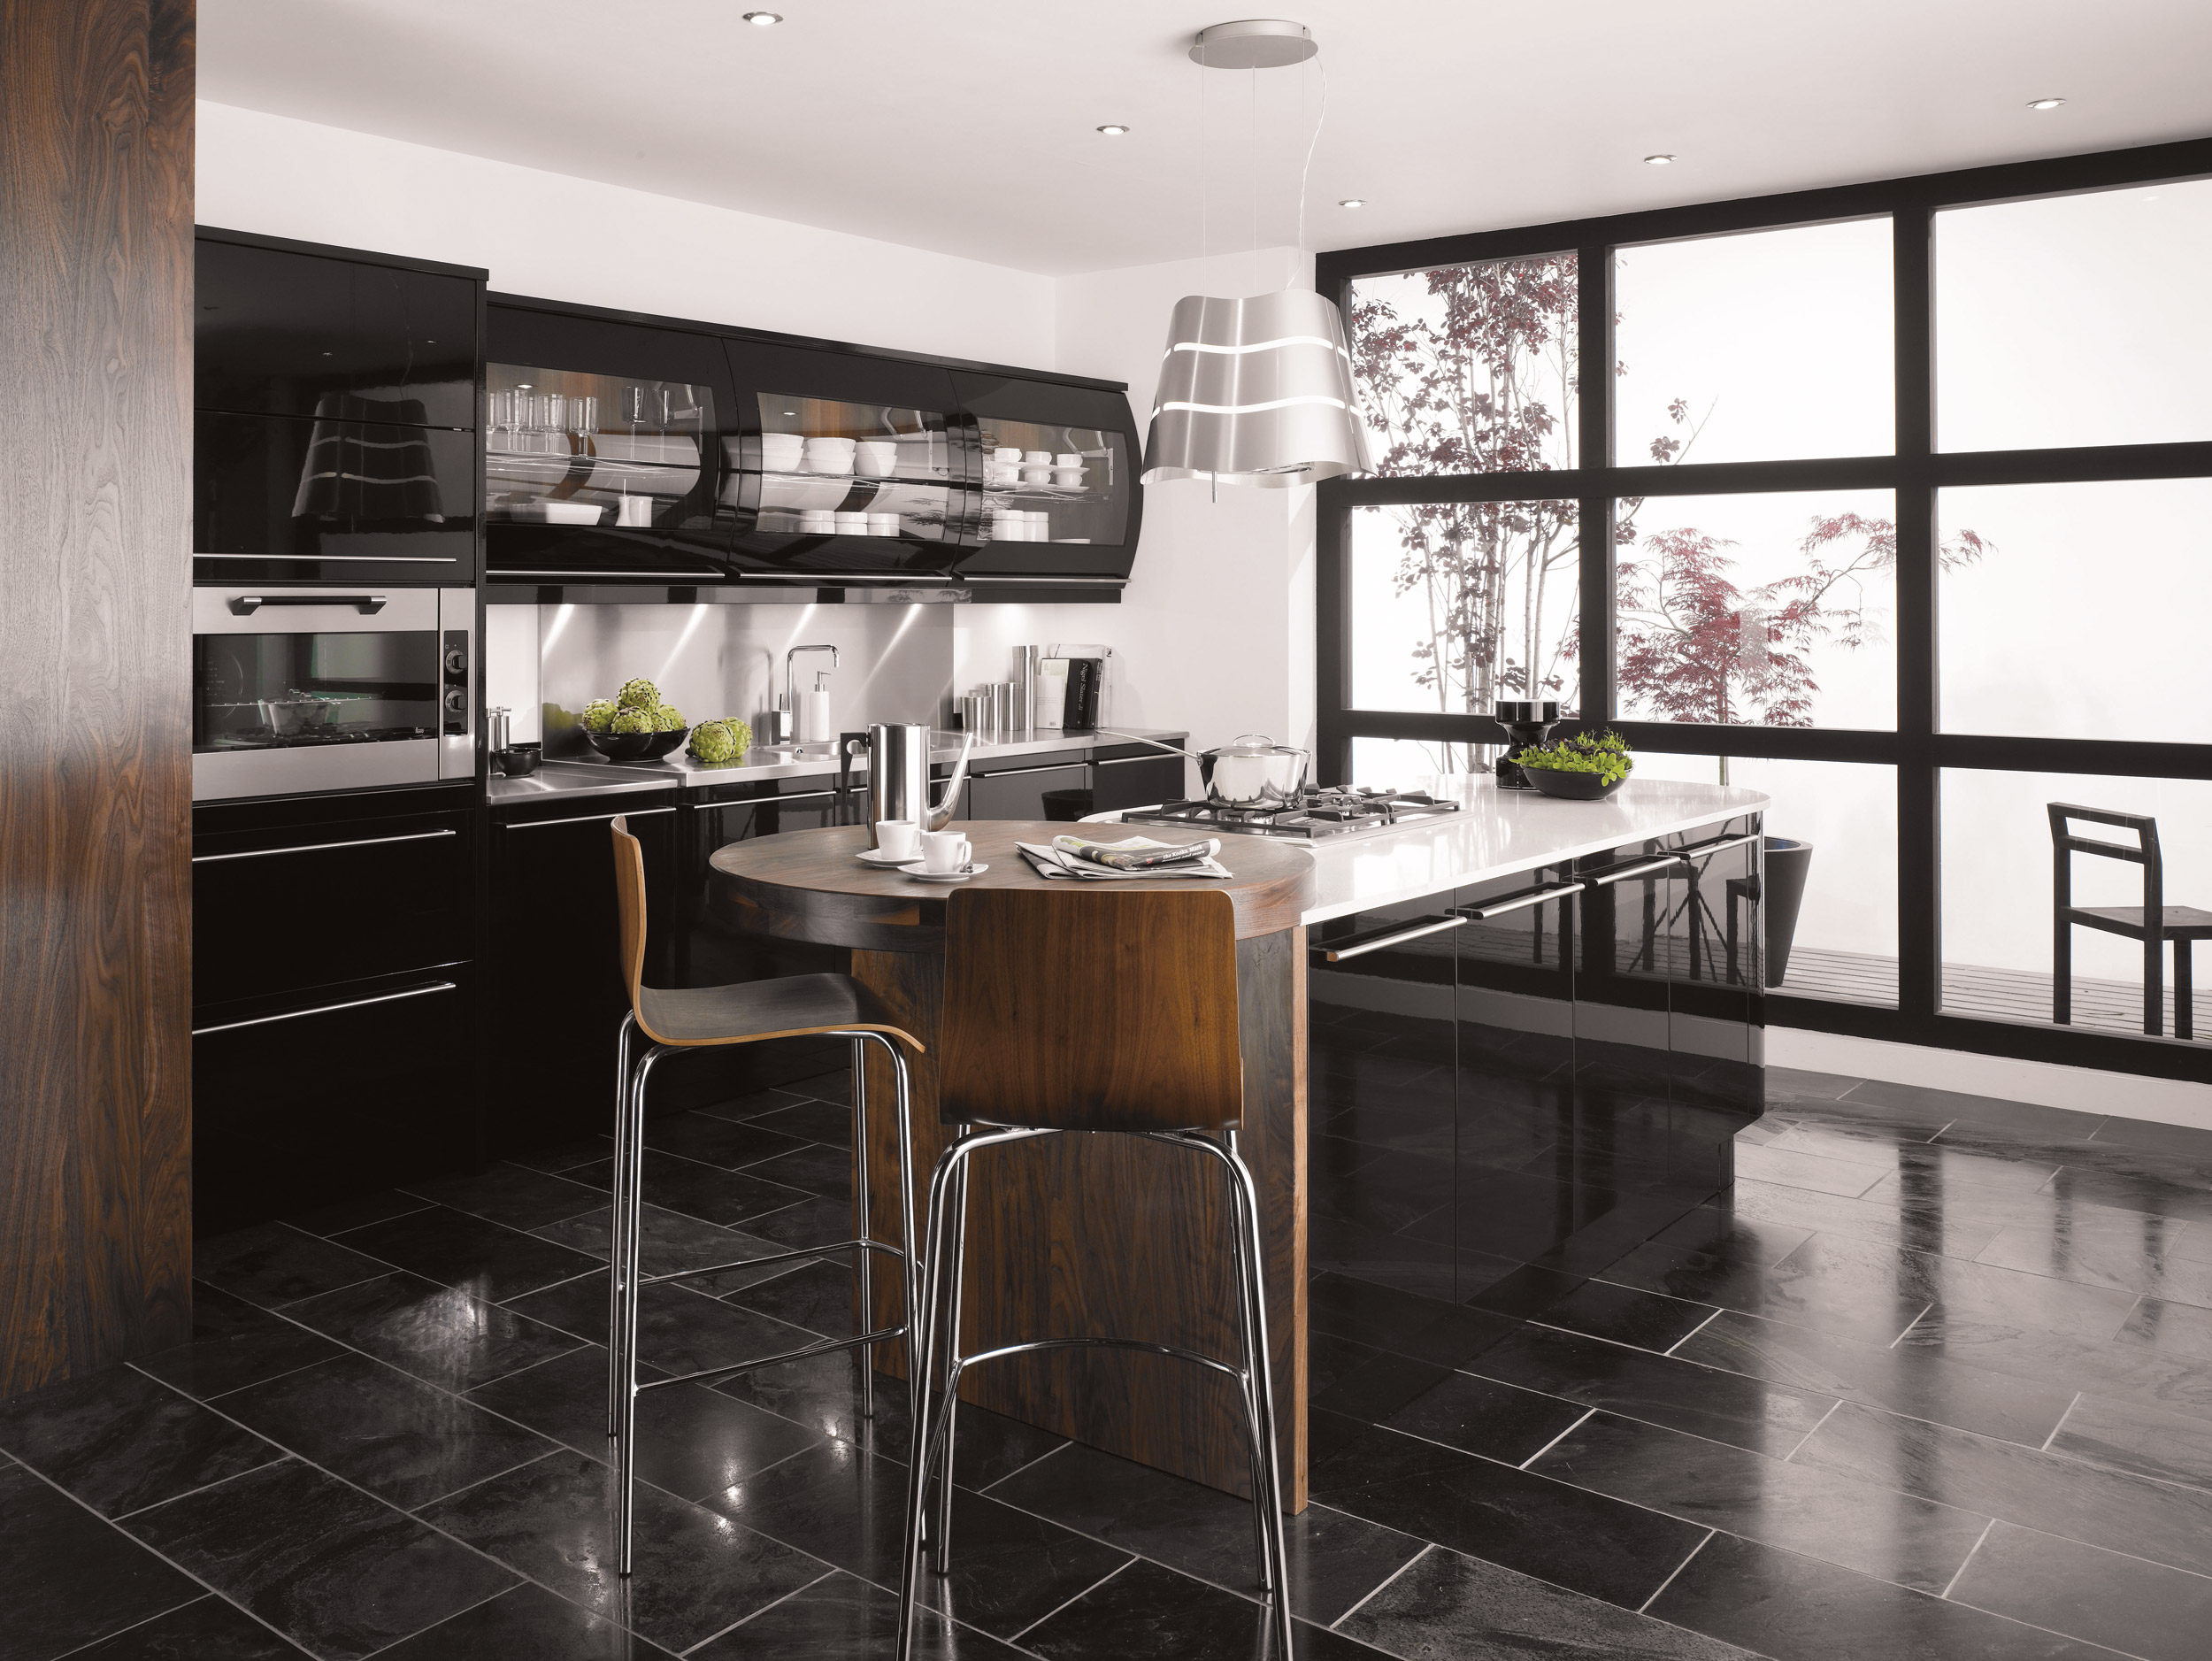 Kitchens: Black Is The New White